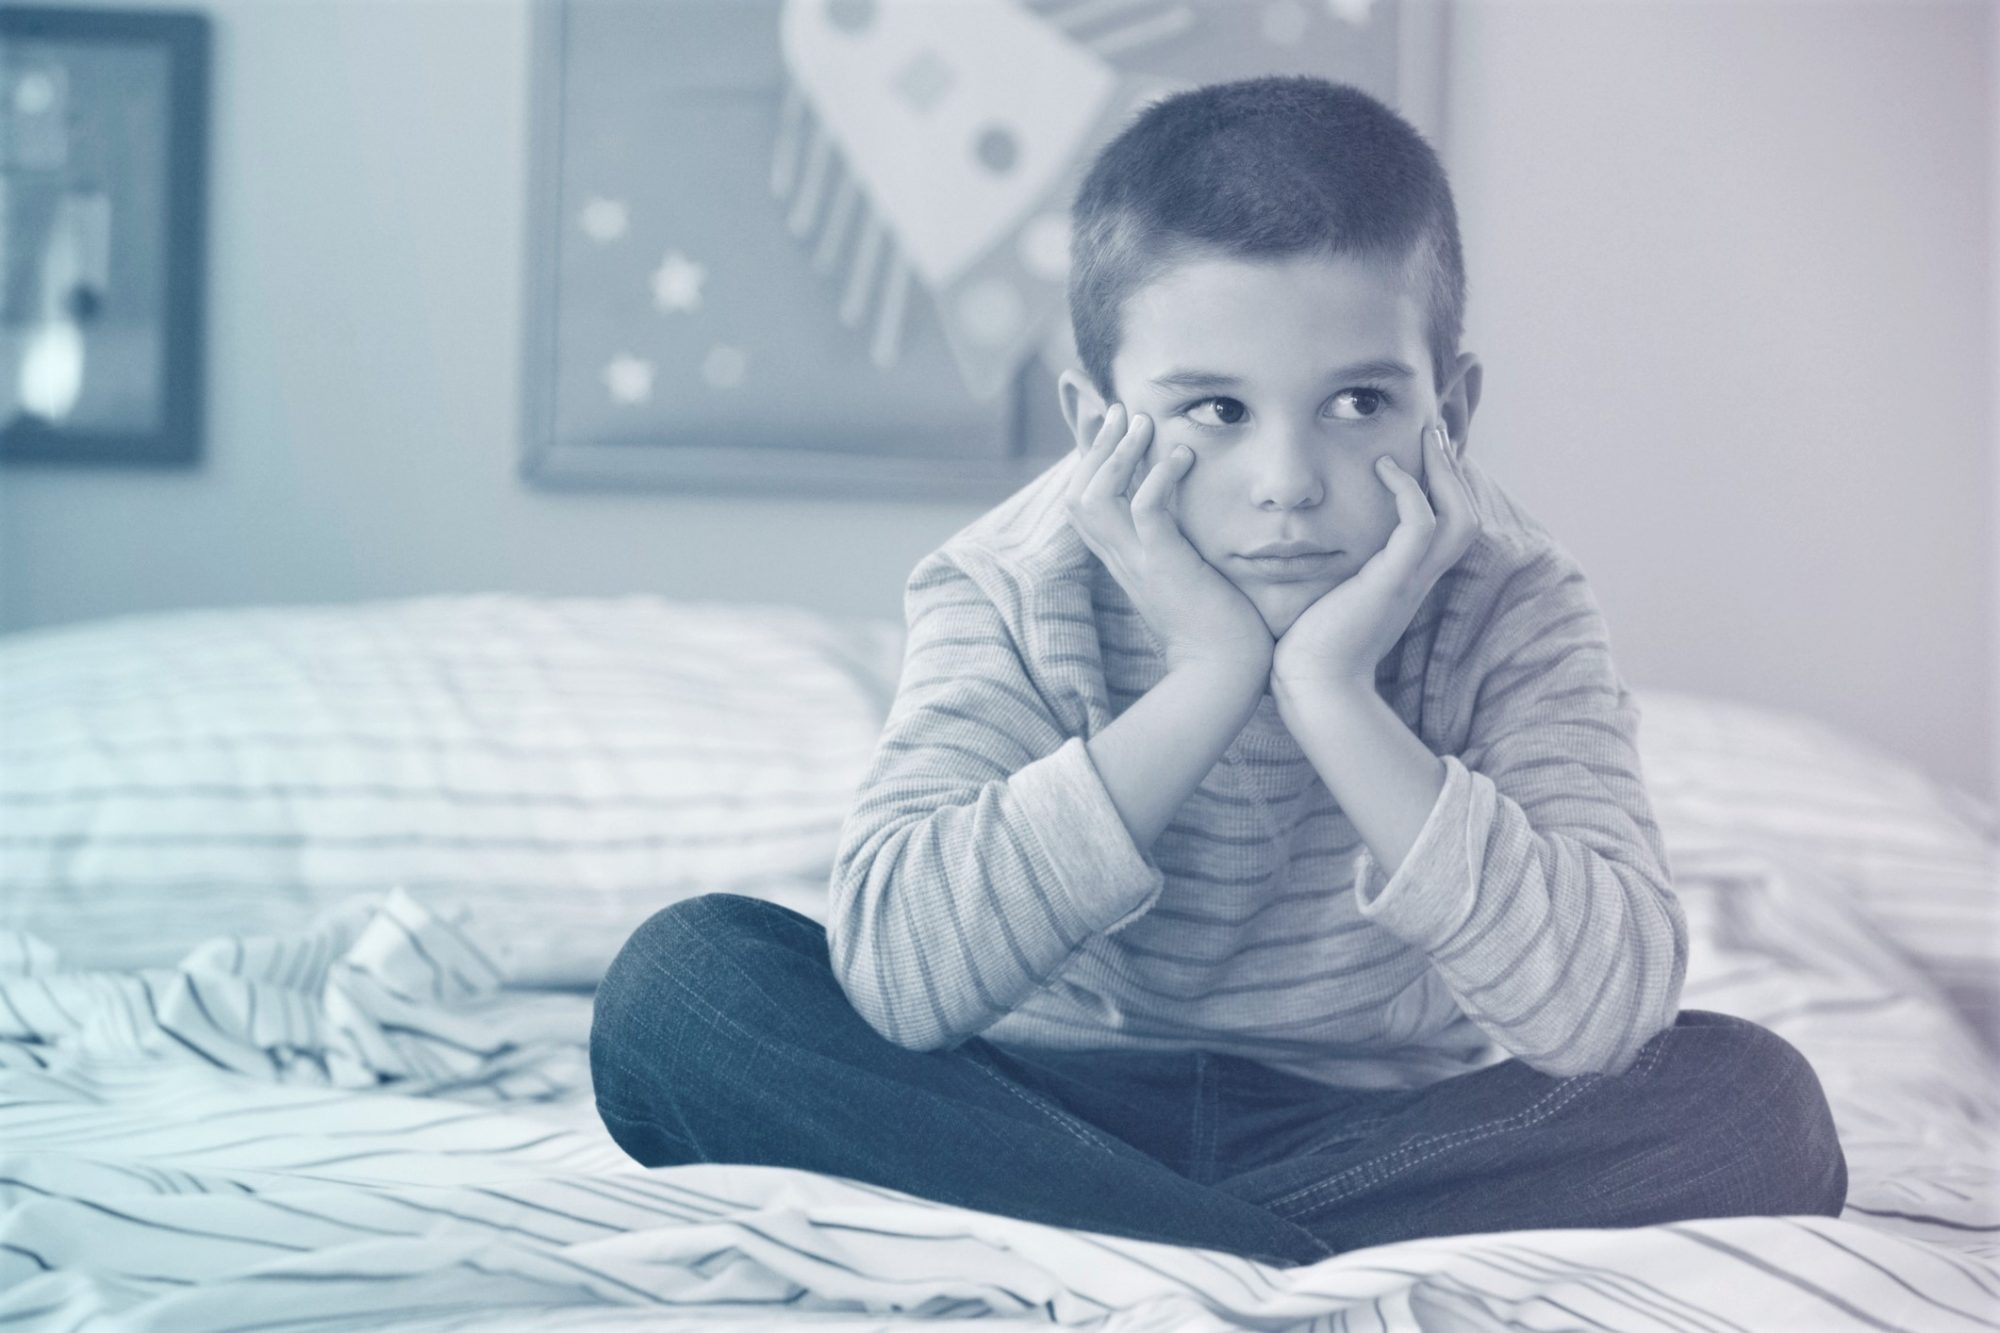 Unhappy boy sitting on bed